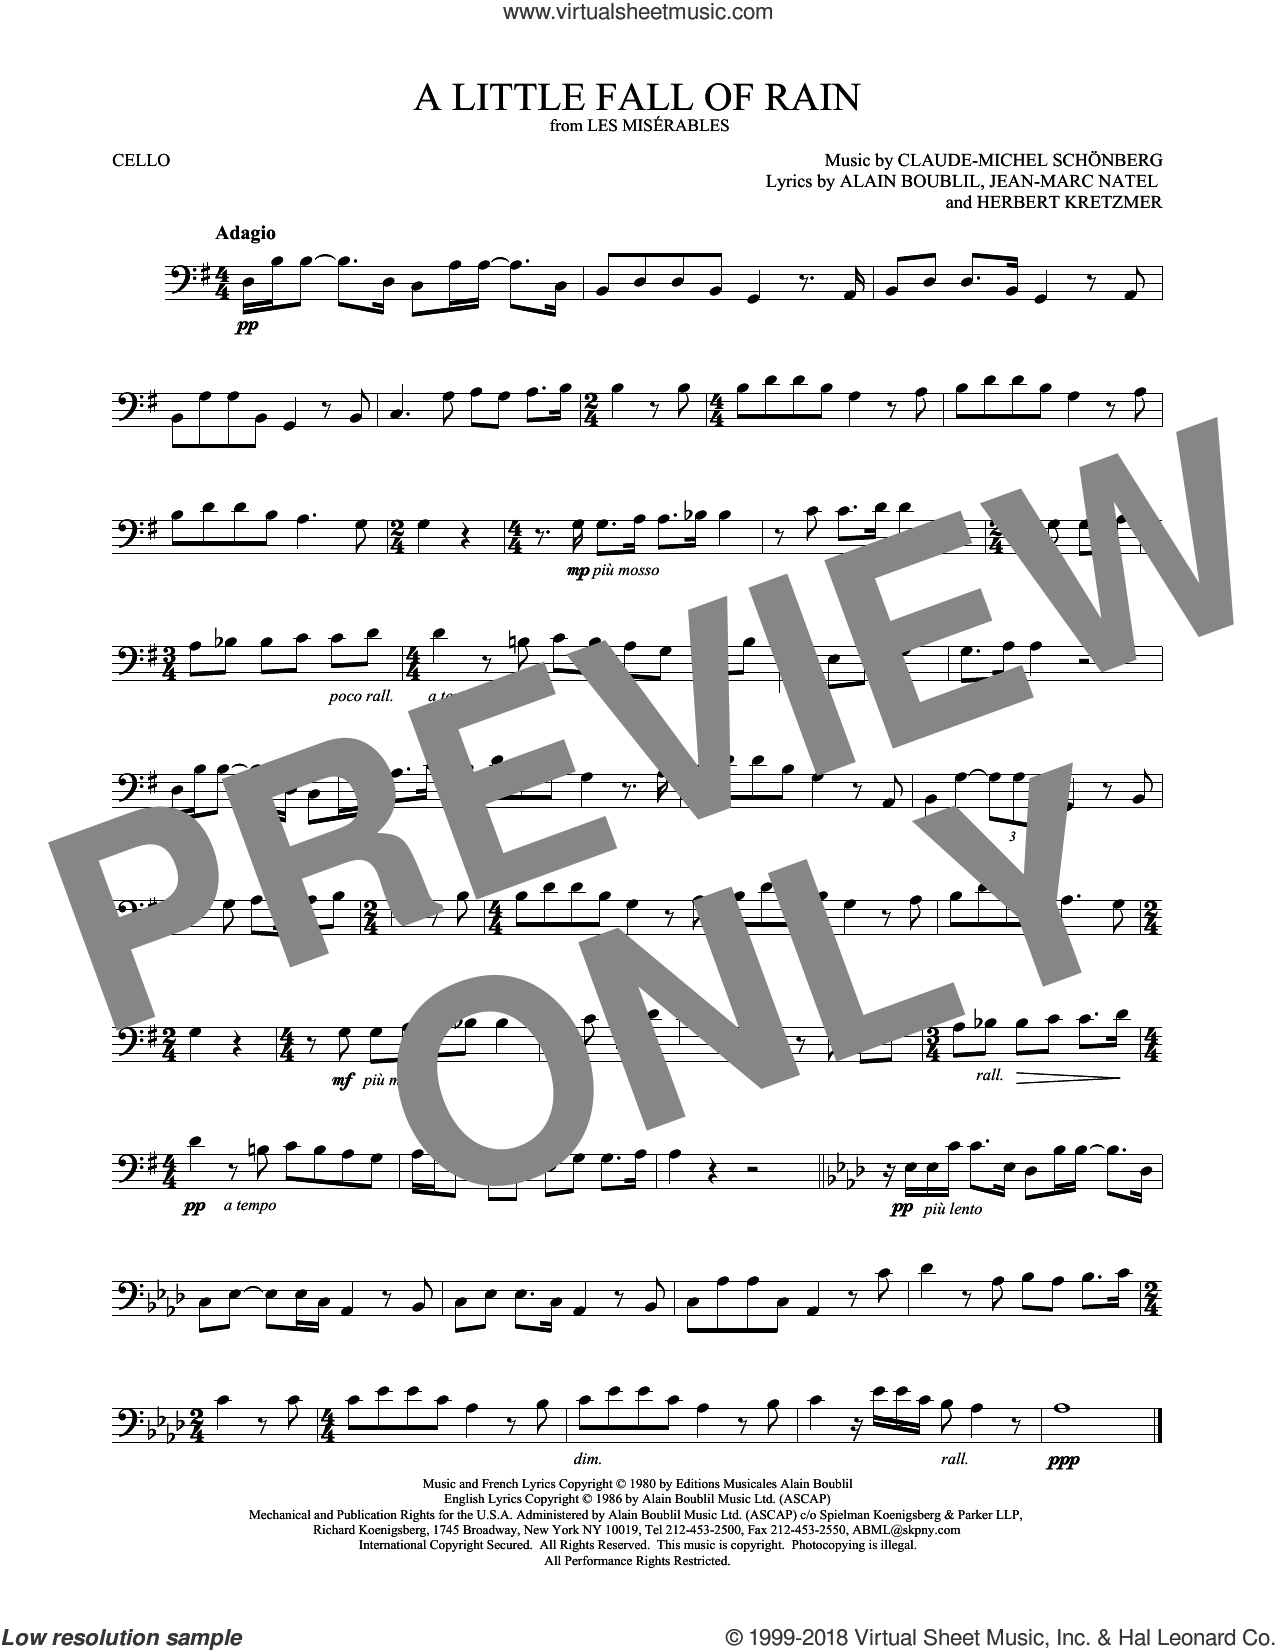 A Little Fall Of Rain sheet music for cello solo by Alain Boublil, Claude-Michel Schonberg, Claude-Michel Schonberg, Herbert Kretzmer and Jean-Marc Natel, intermediate skill level